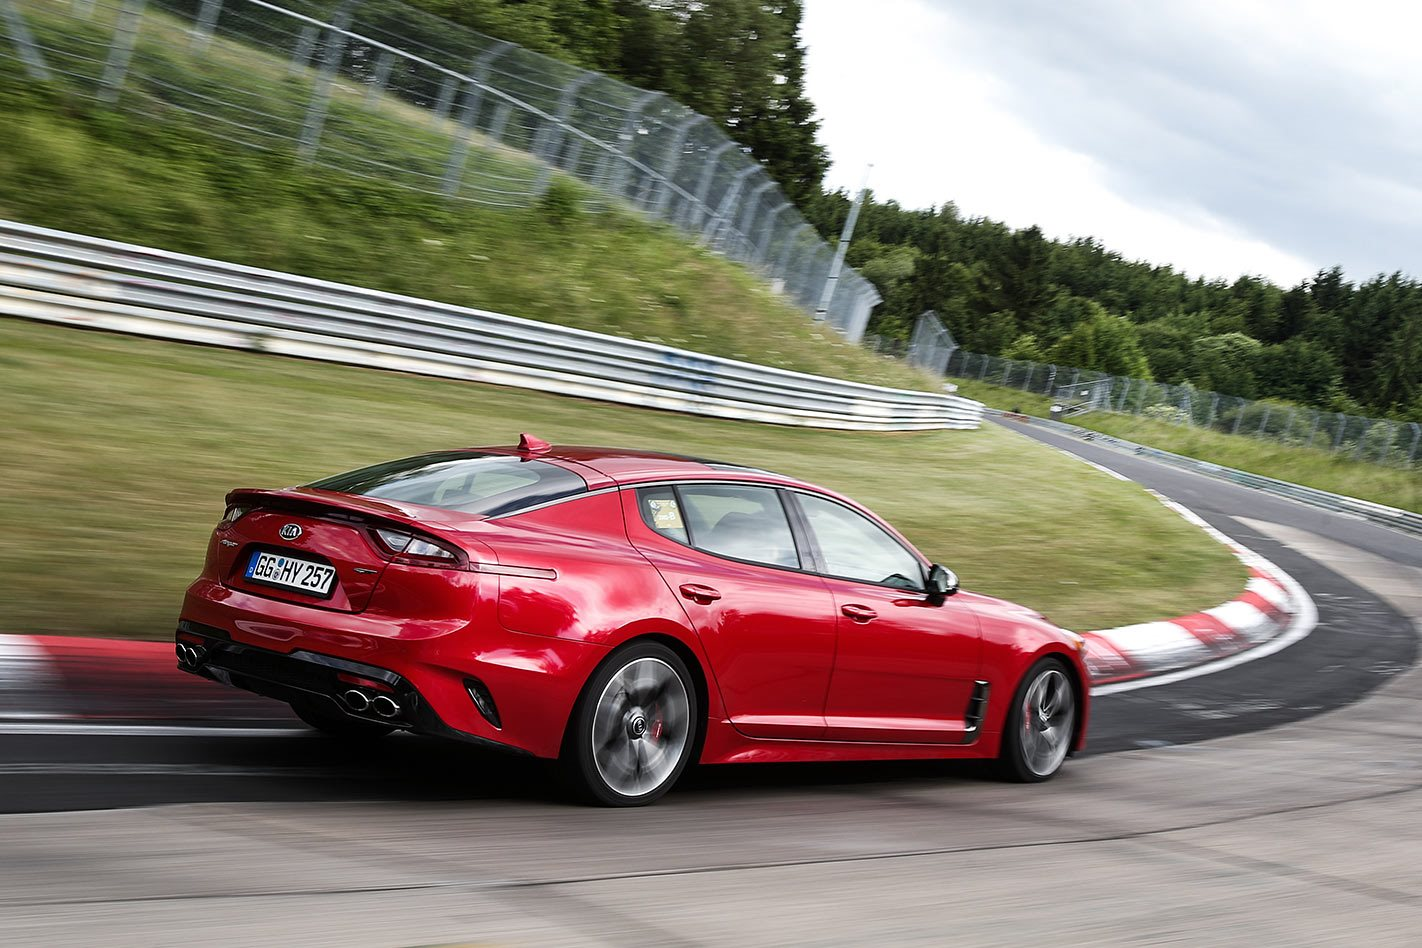 2017 Kia Stinger GT rear